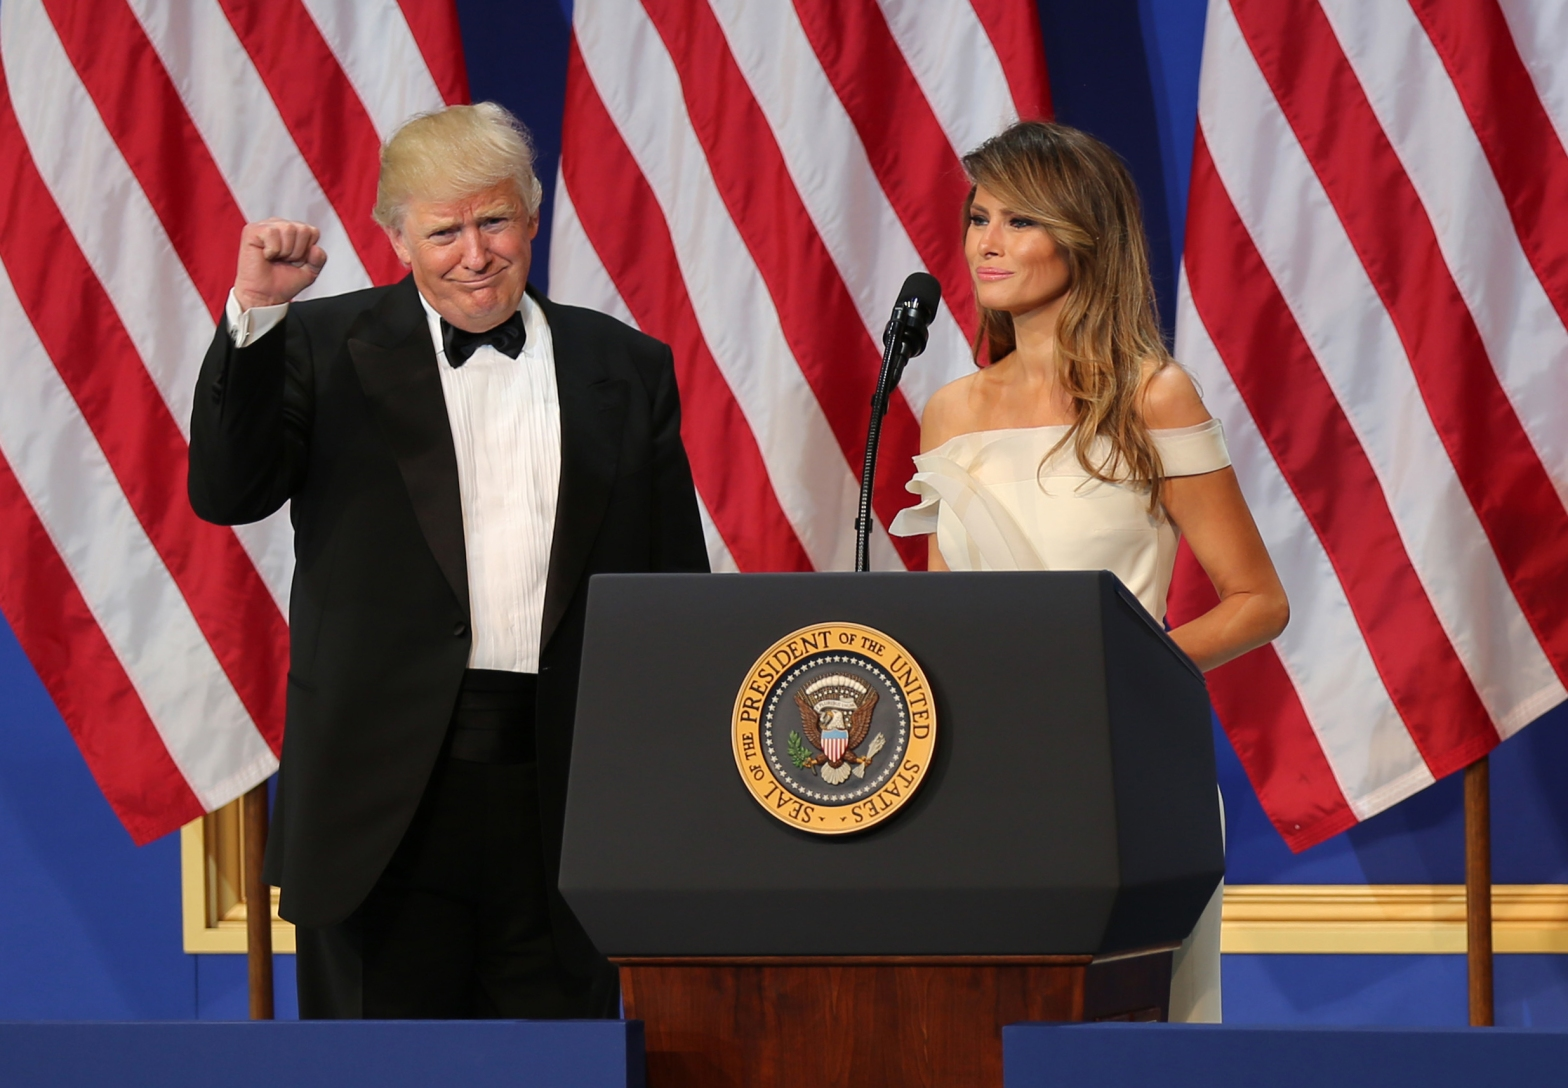 President Donald Trump, and First Lady Melania, gives a speach, at the salute the our Armed Services Ball